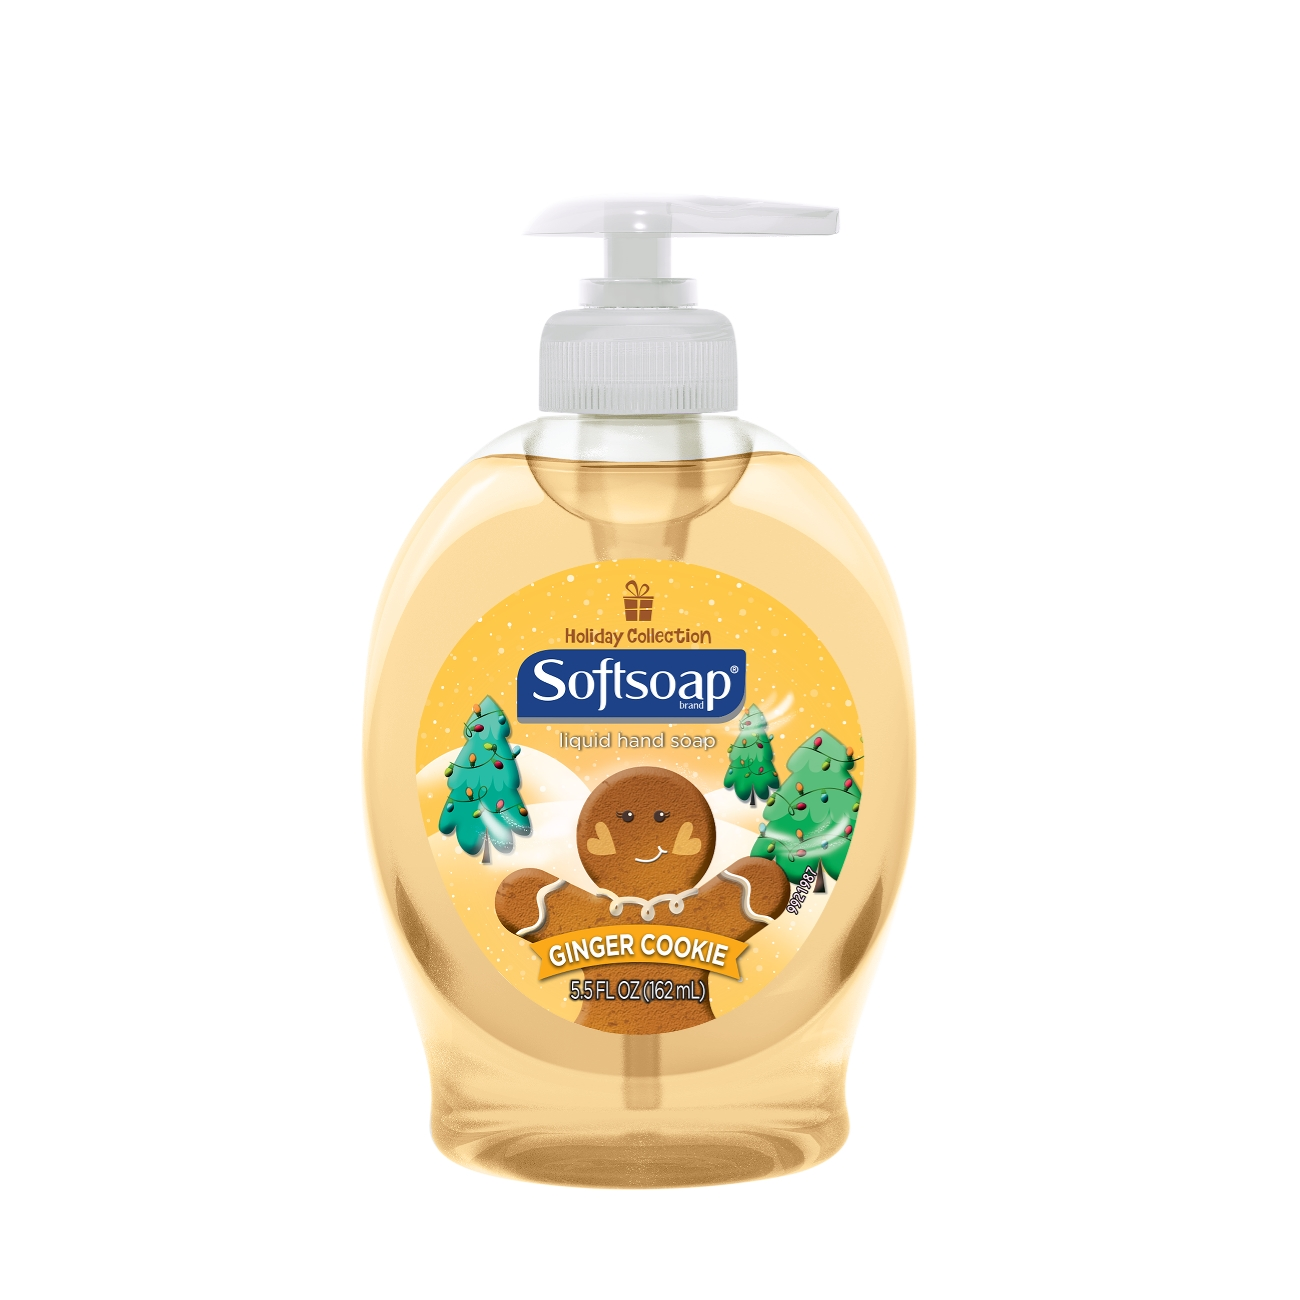 Softsoap Liquid Hand Soap Pump, Holiday Collection Ginger Cookie - 5.5 fl oz